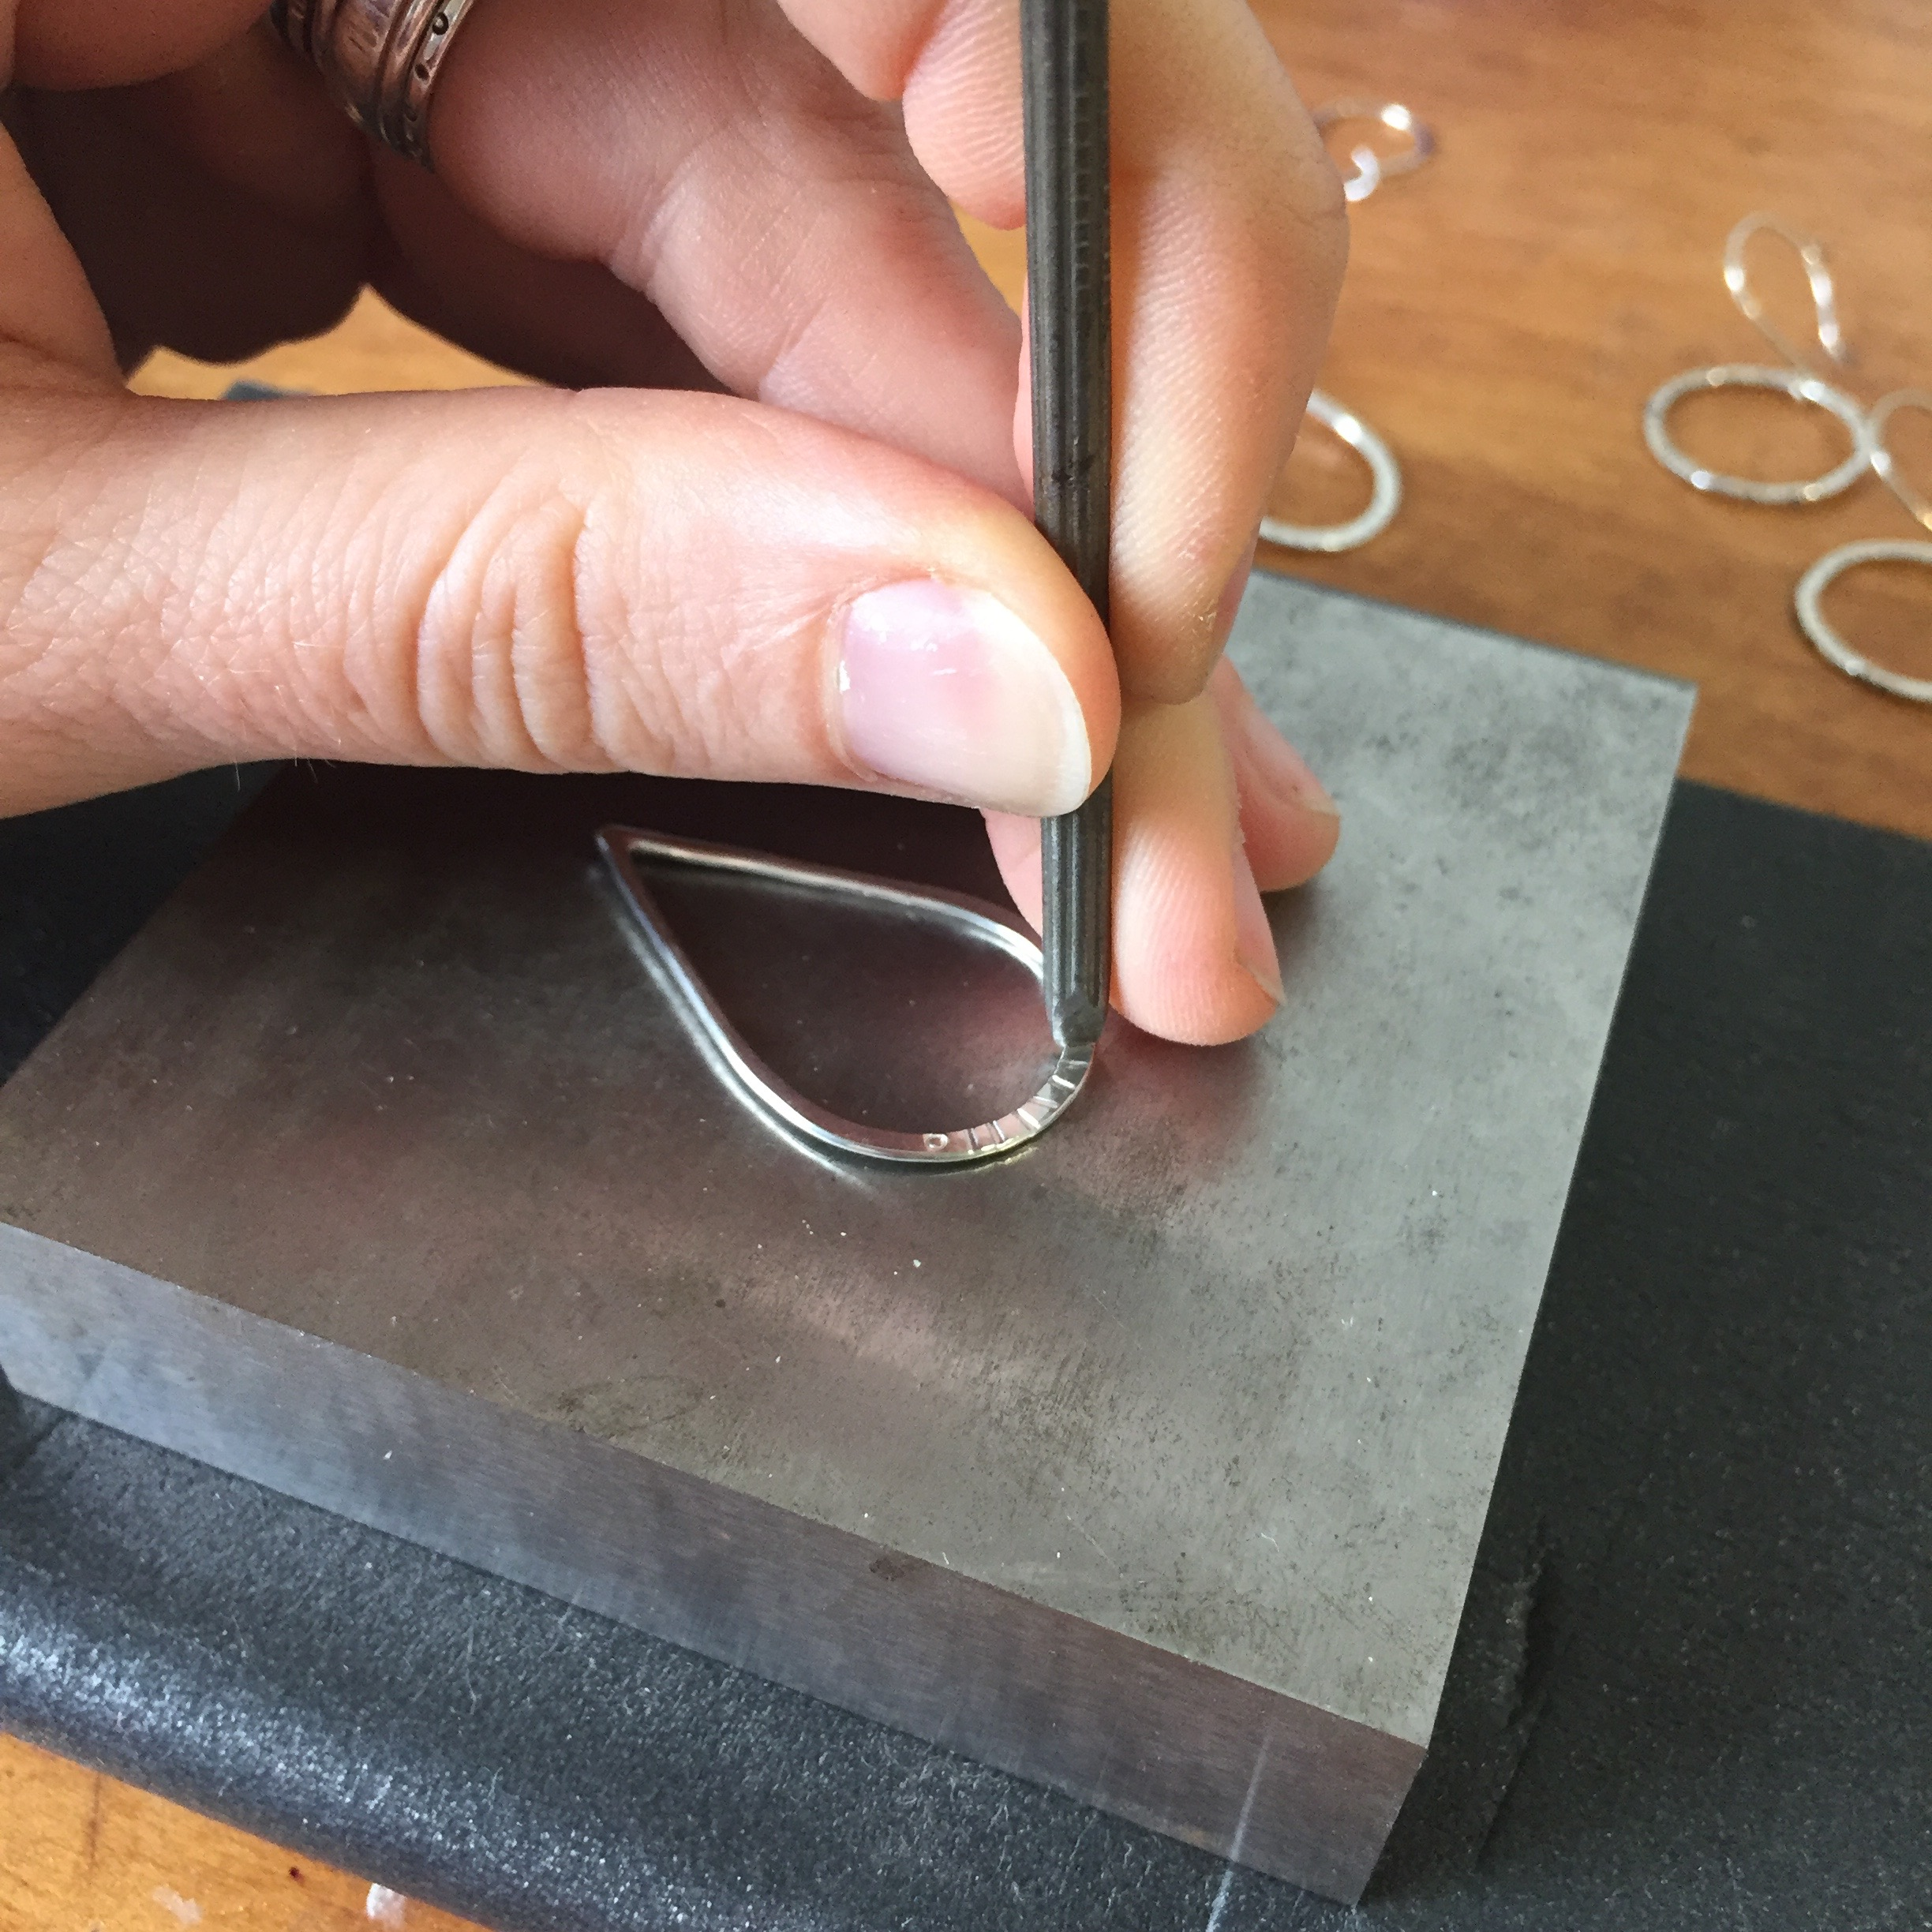 asheville-jewelry-class-workshop-ignite-studio